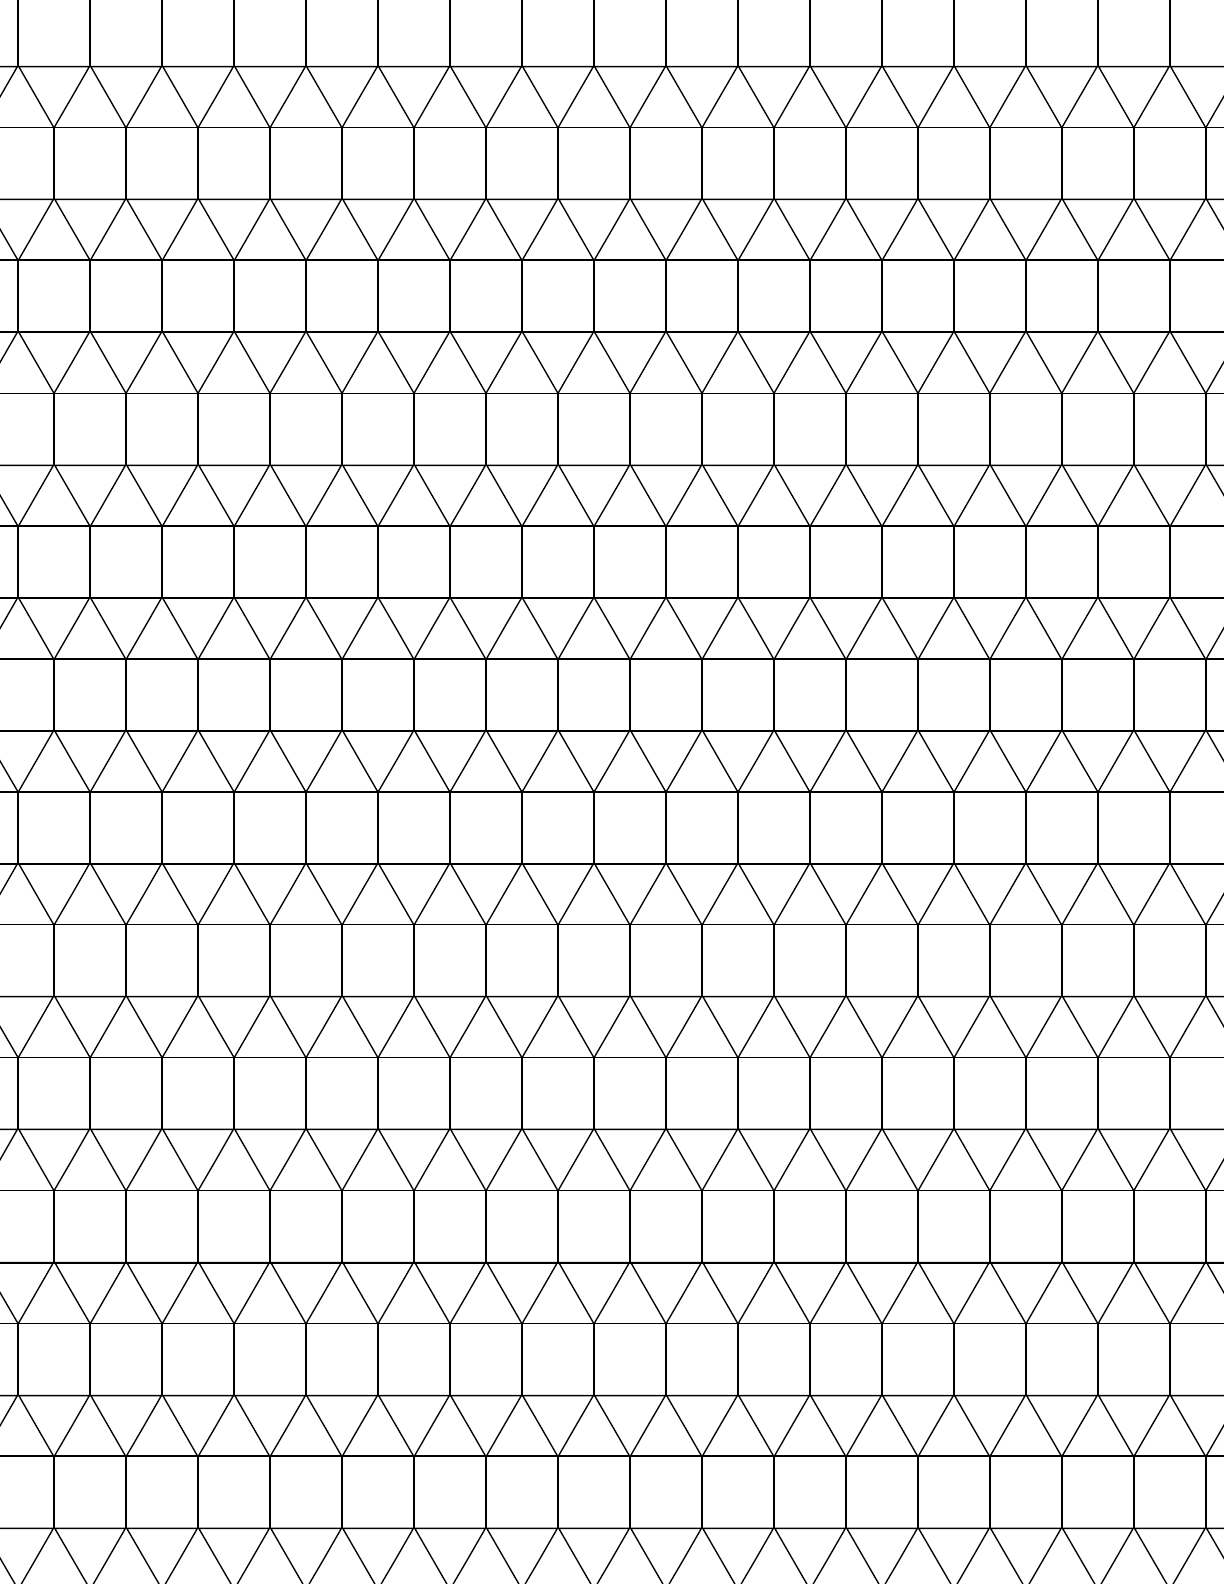 small tessellation graph paper  3 3 3 4 4  free download